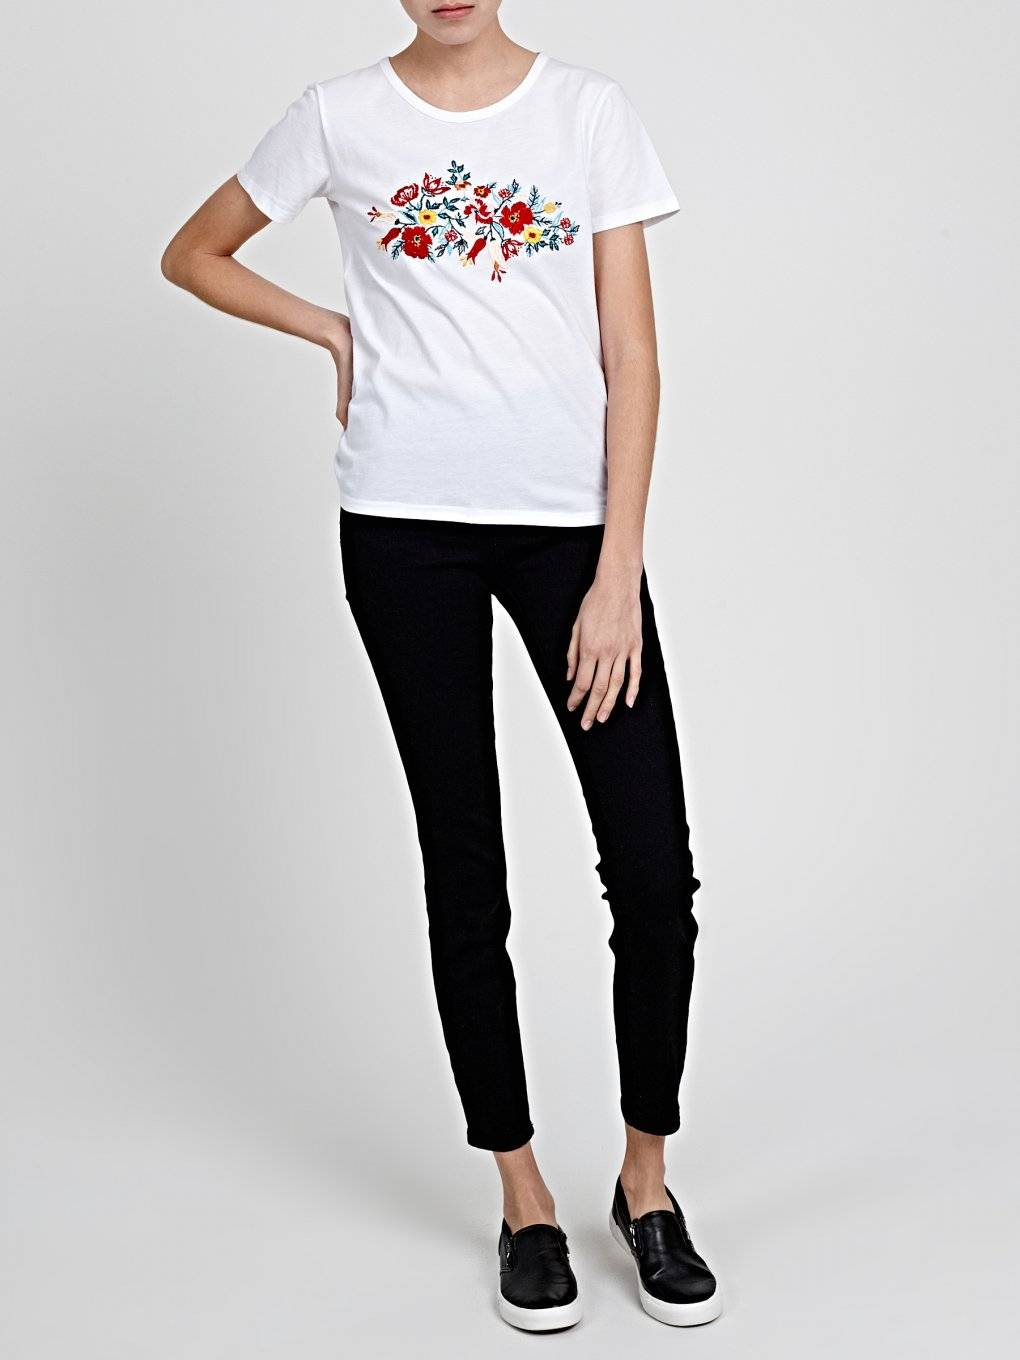 DISTRESSED T-SHIRT WITH FRONT EMBROIDERY